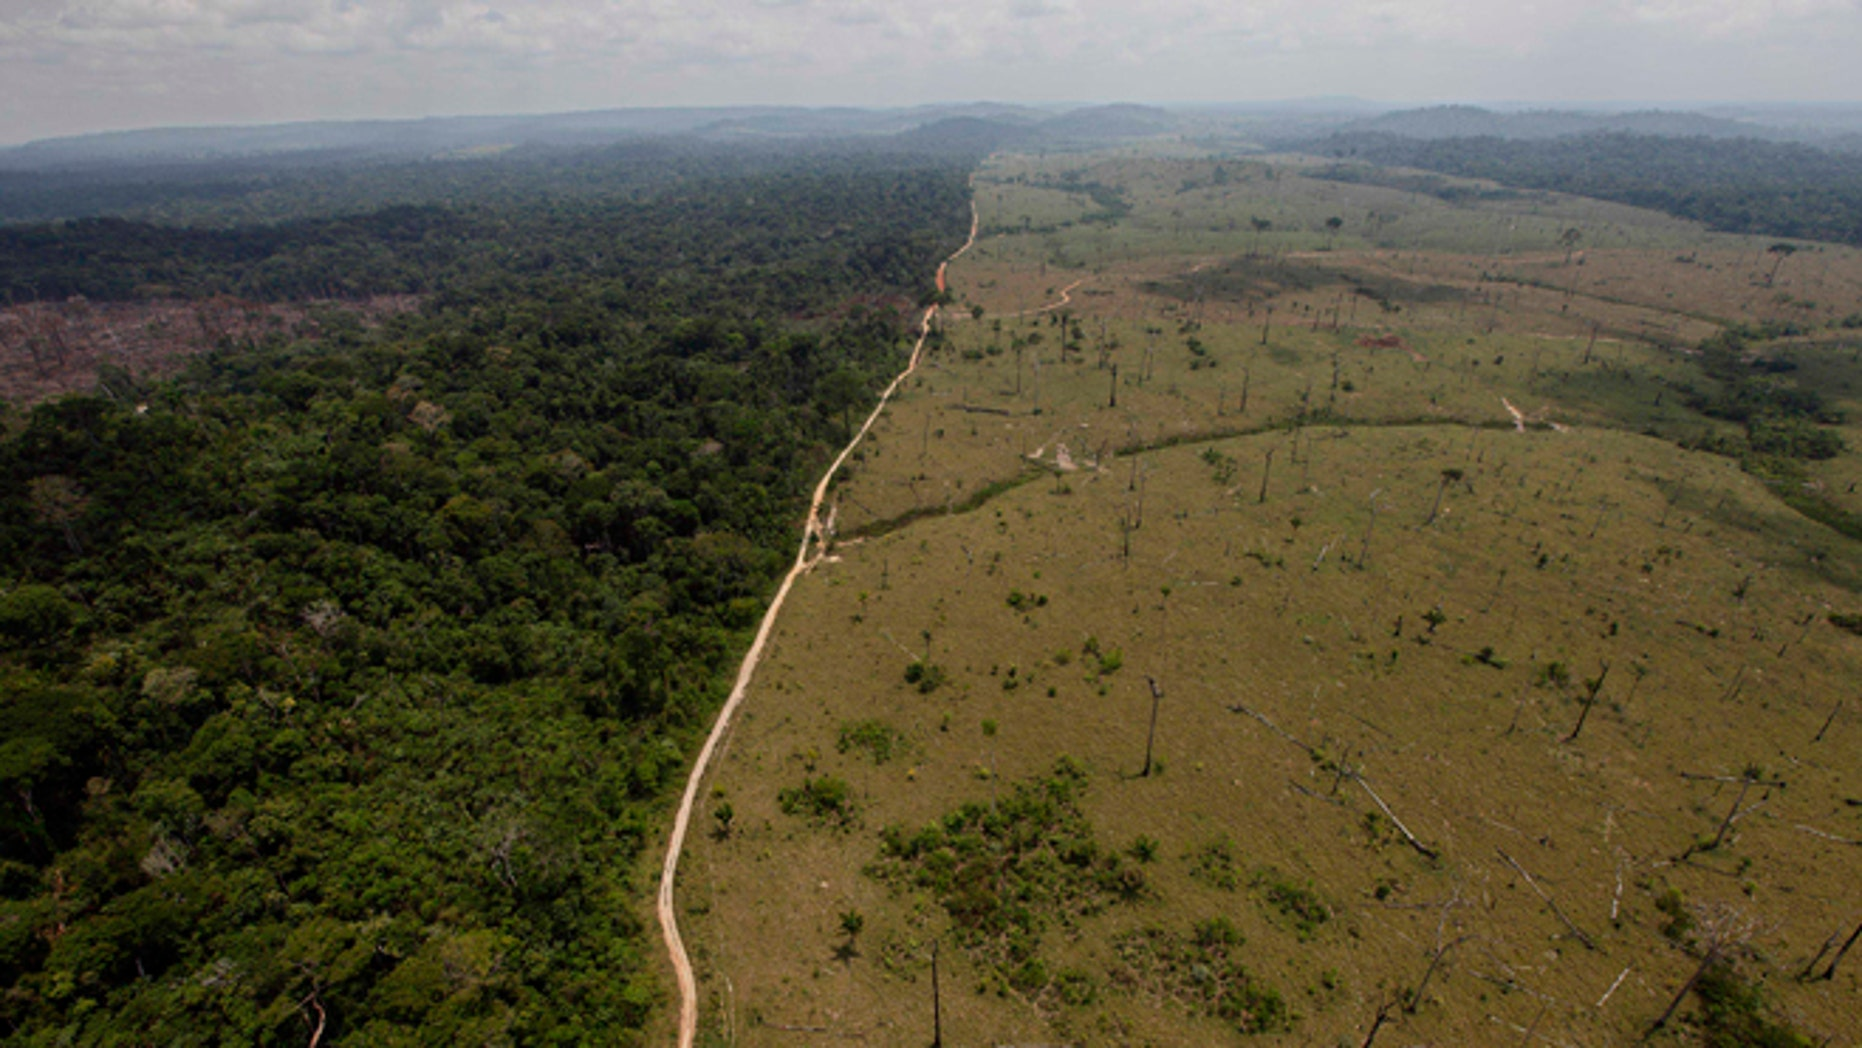 FILE - In this Sept. 15, 2009 file photo, a deforested area is seen near Novo Progresso in Brazil's northern state of Para.  Deforestation in Brazil's Amazon rainforest has dropped to its lowest level in 24 years, the government said Tuesday, Nov. 27, 2012. (AP Photo/Andre Penner, File)